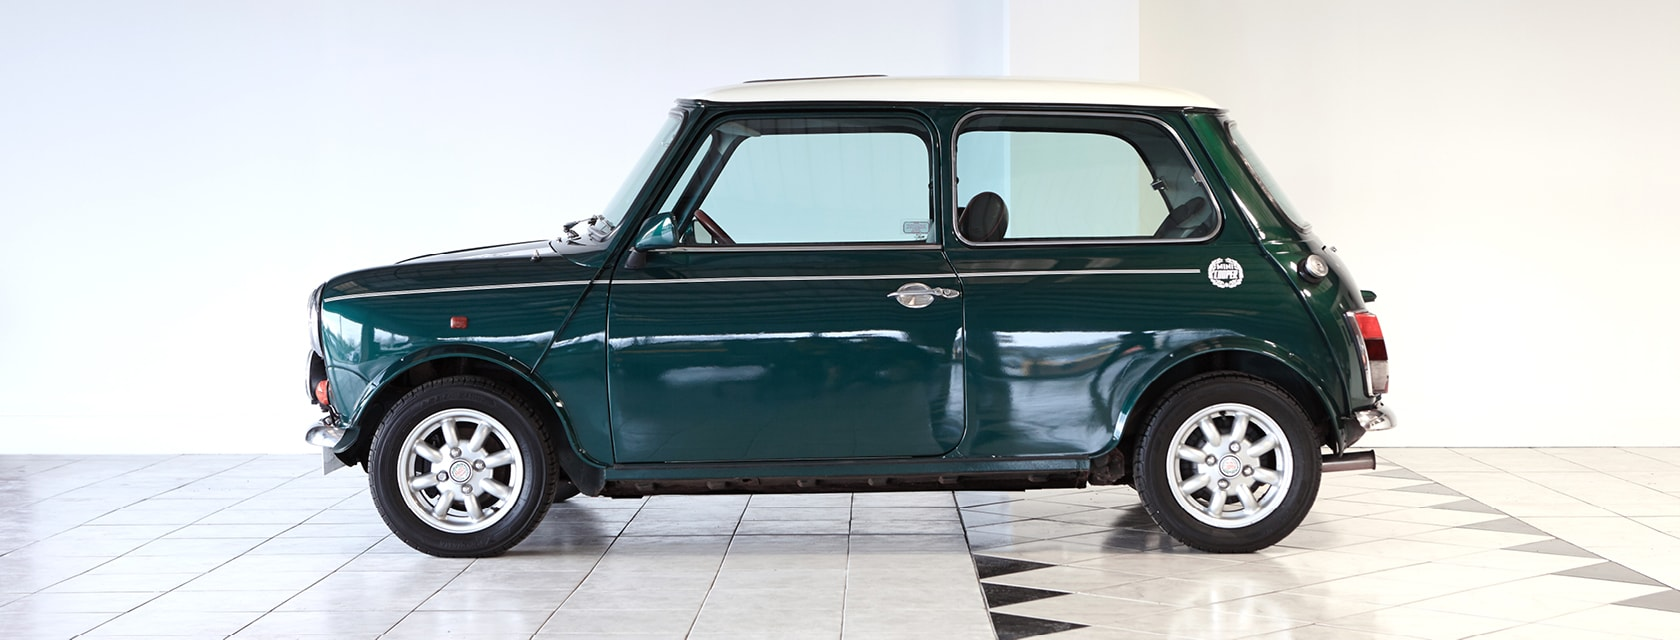 1990 Mini Cooper Rsp Limited Edition For Sale Rover Special Product